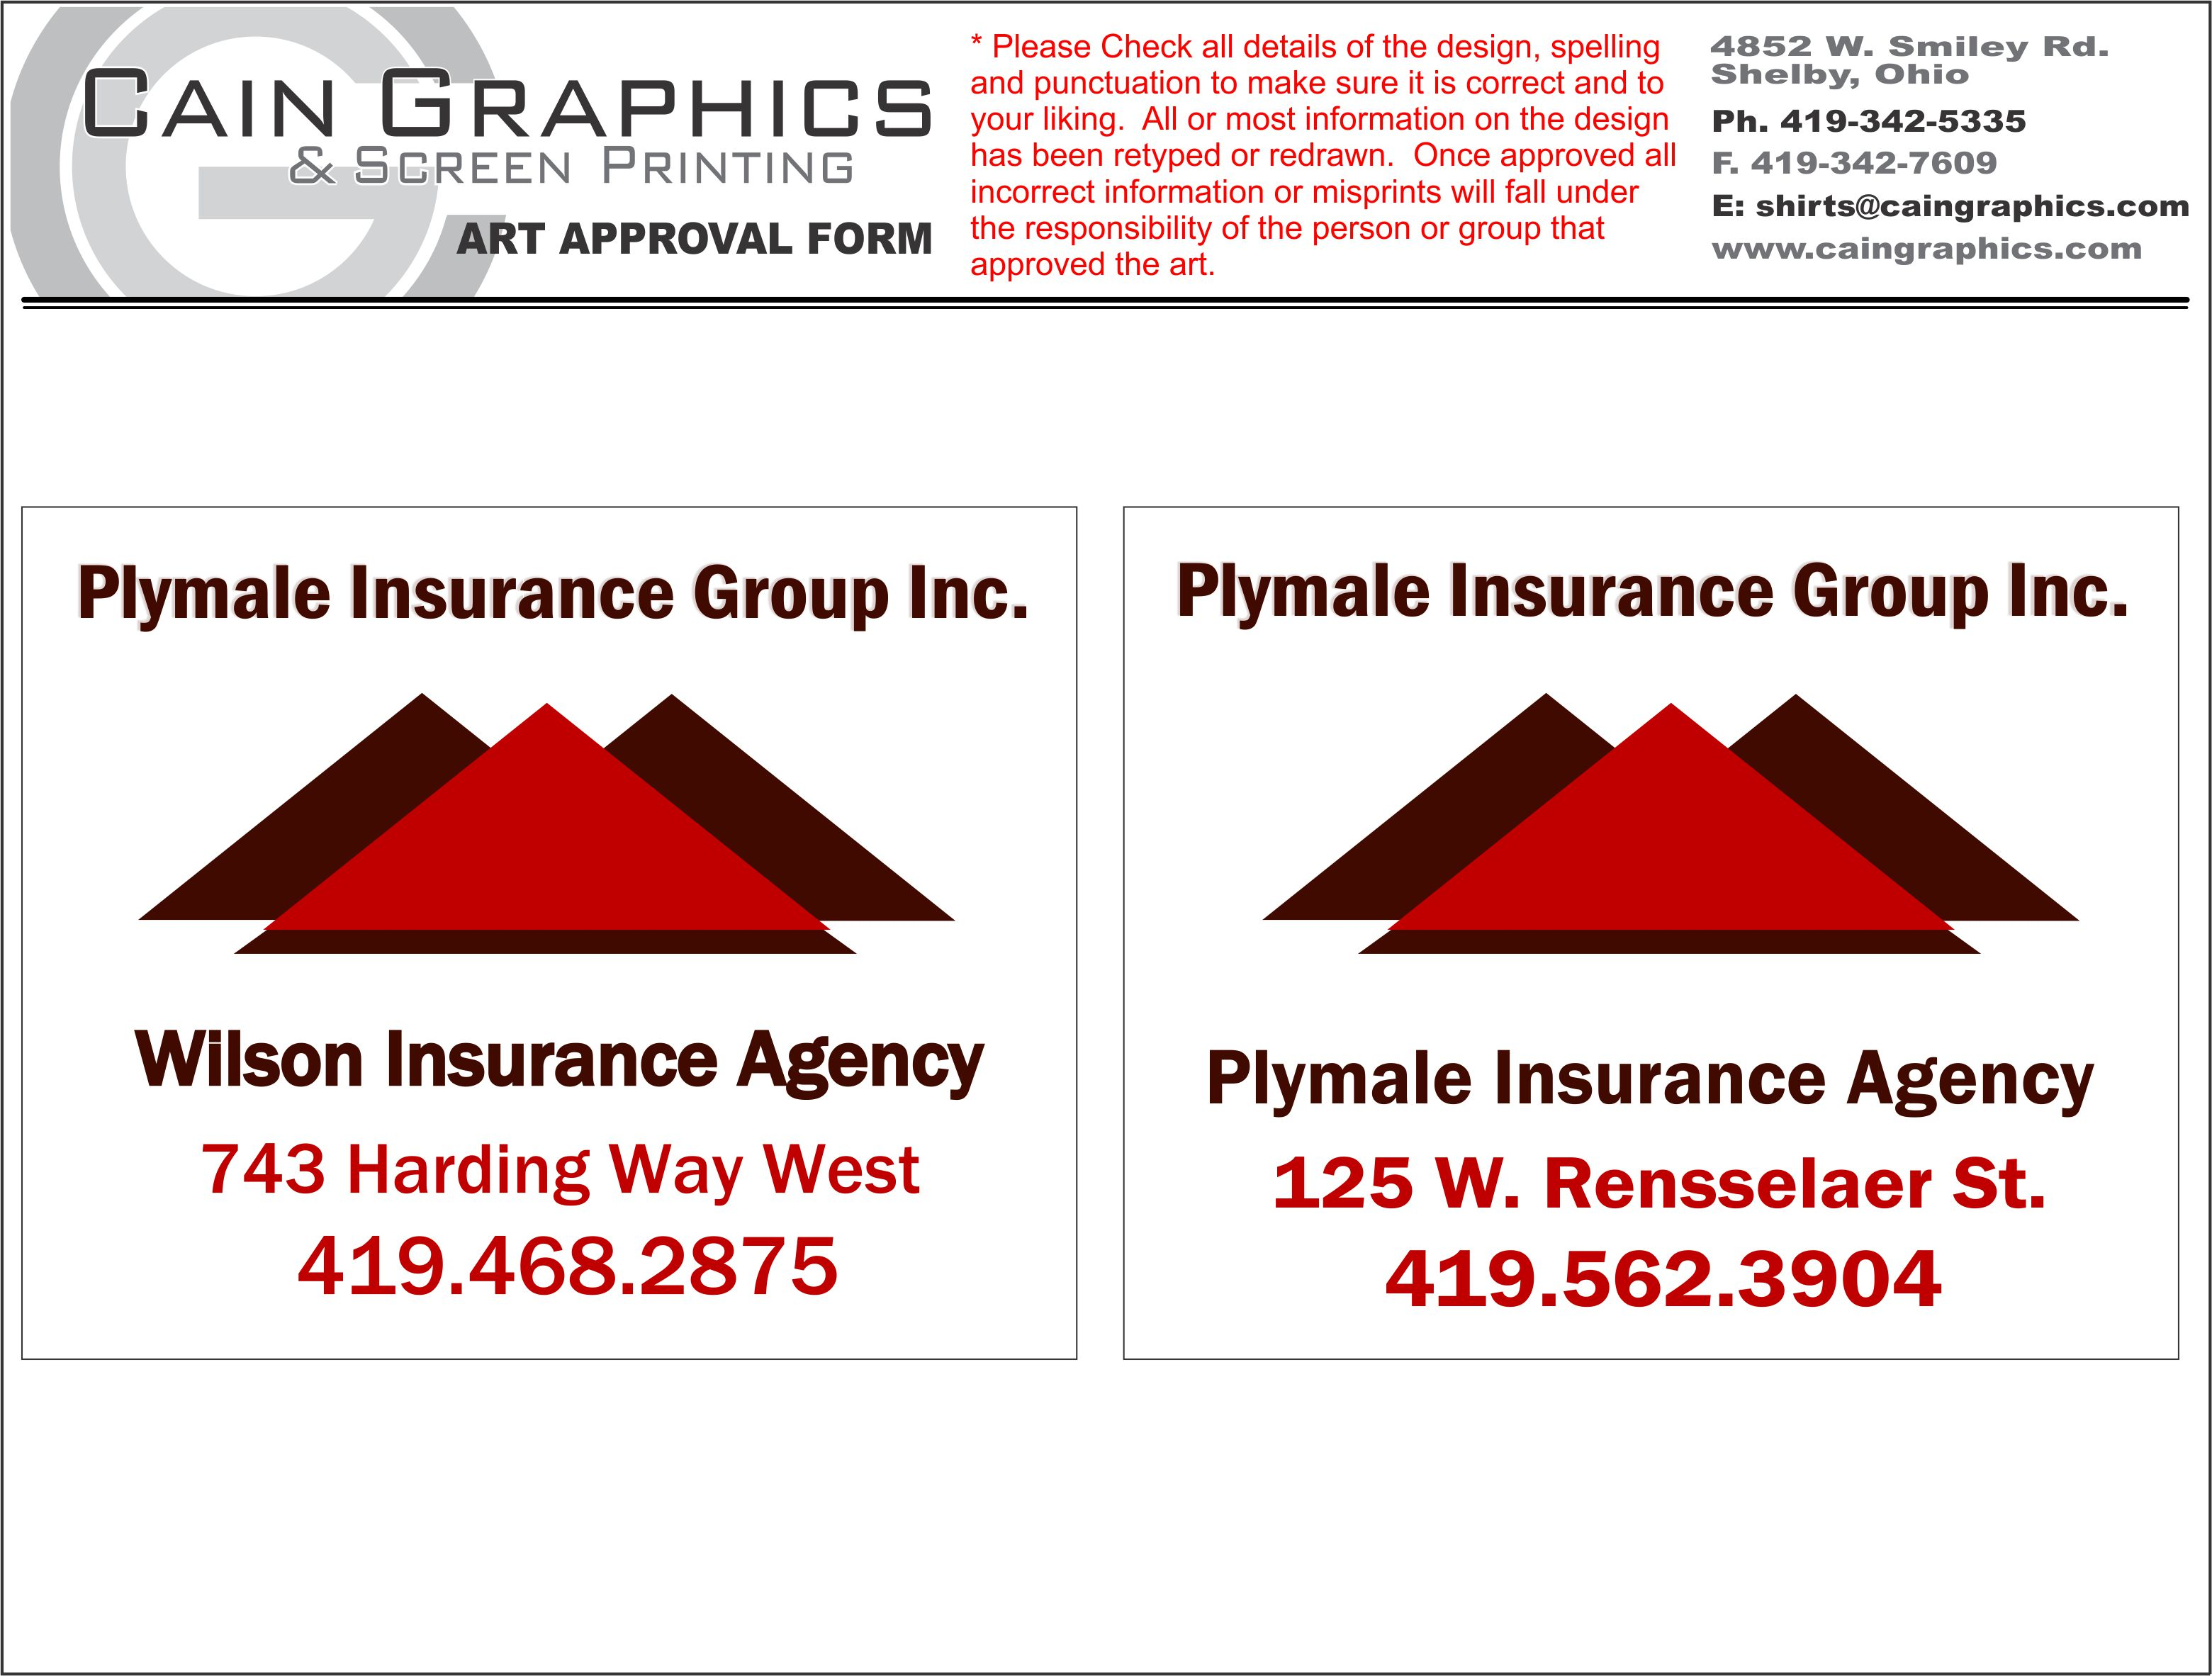 PLYMALE INSURANCE GROUP,INC